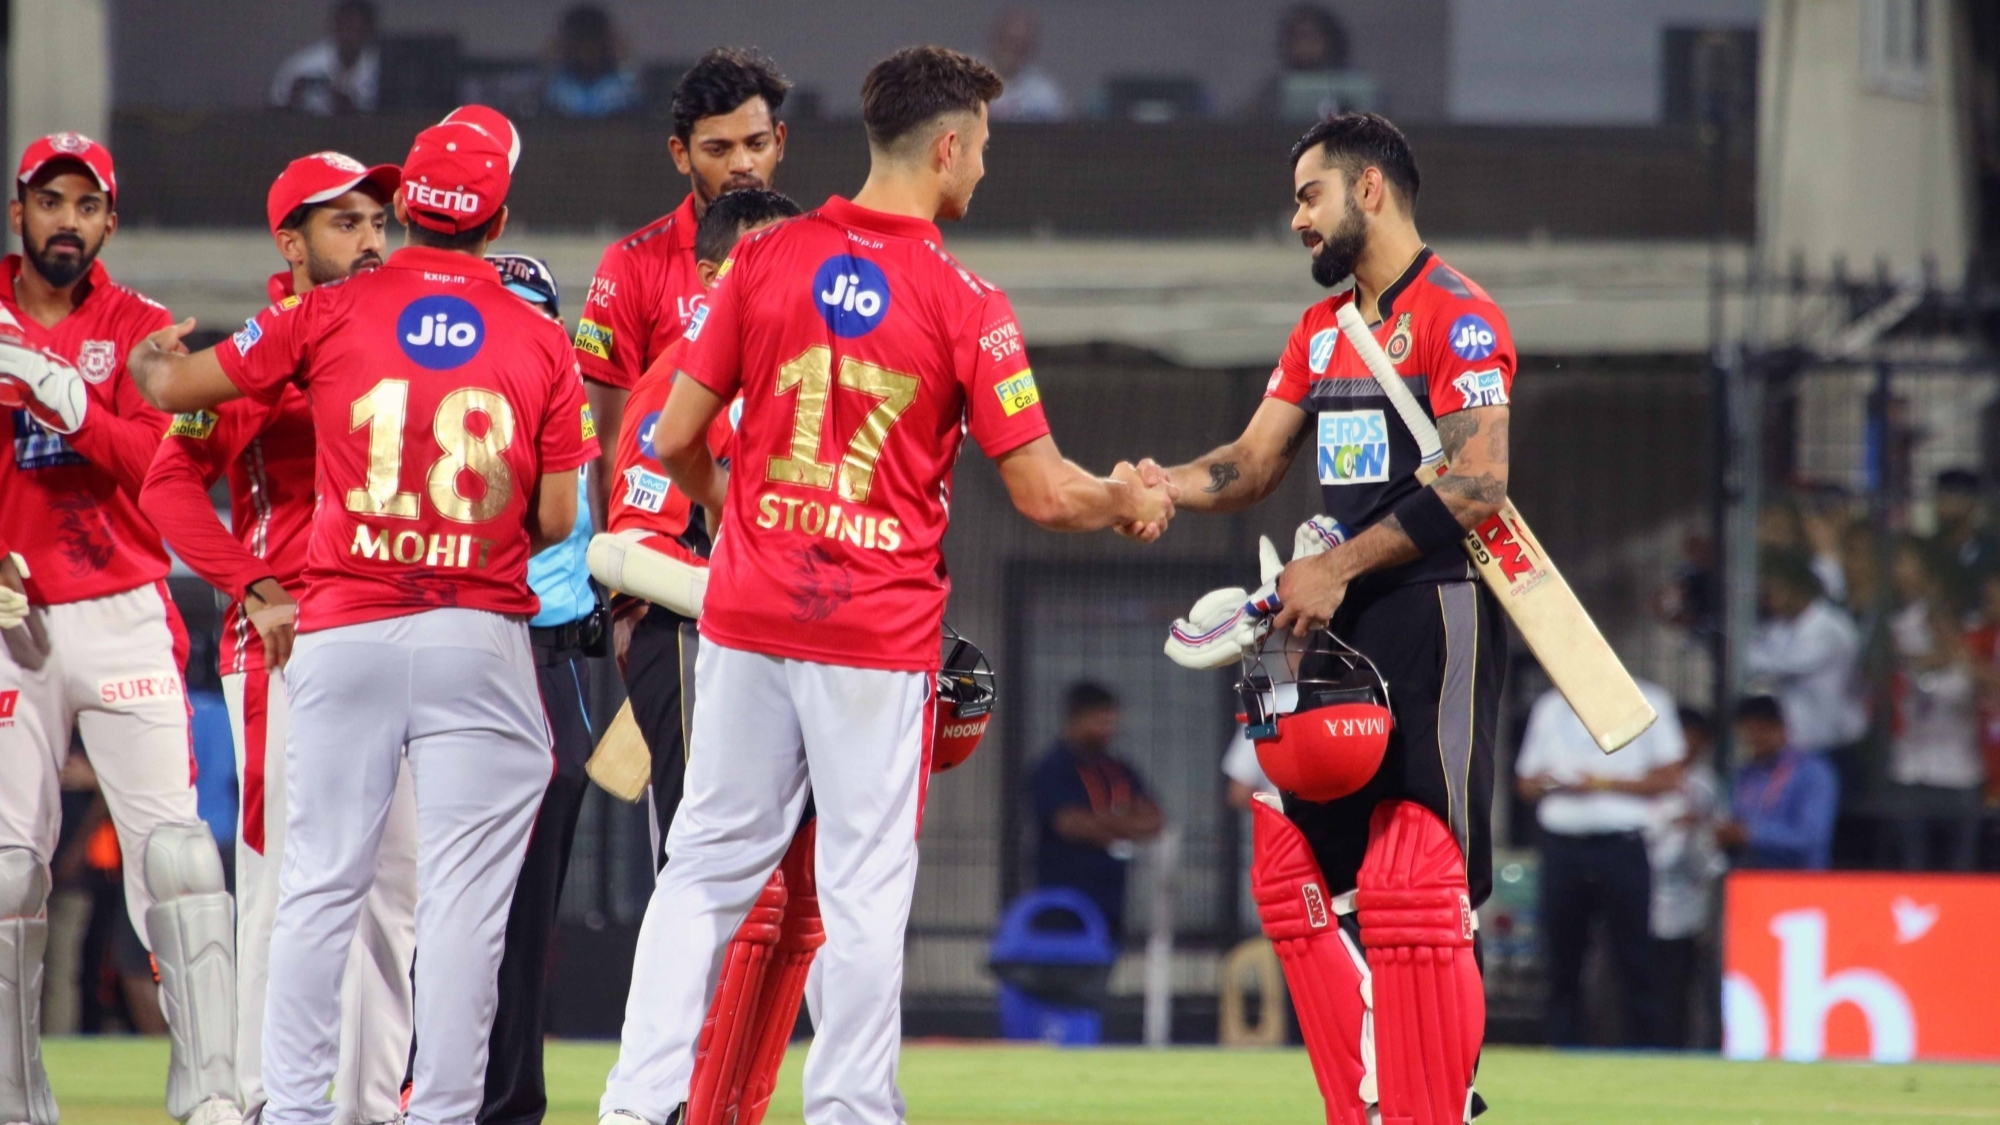 IPL 2018: Virat Kohli ecstatic after RCB's clinical show against KXIP